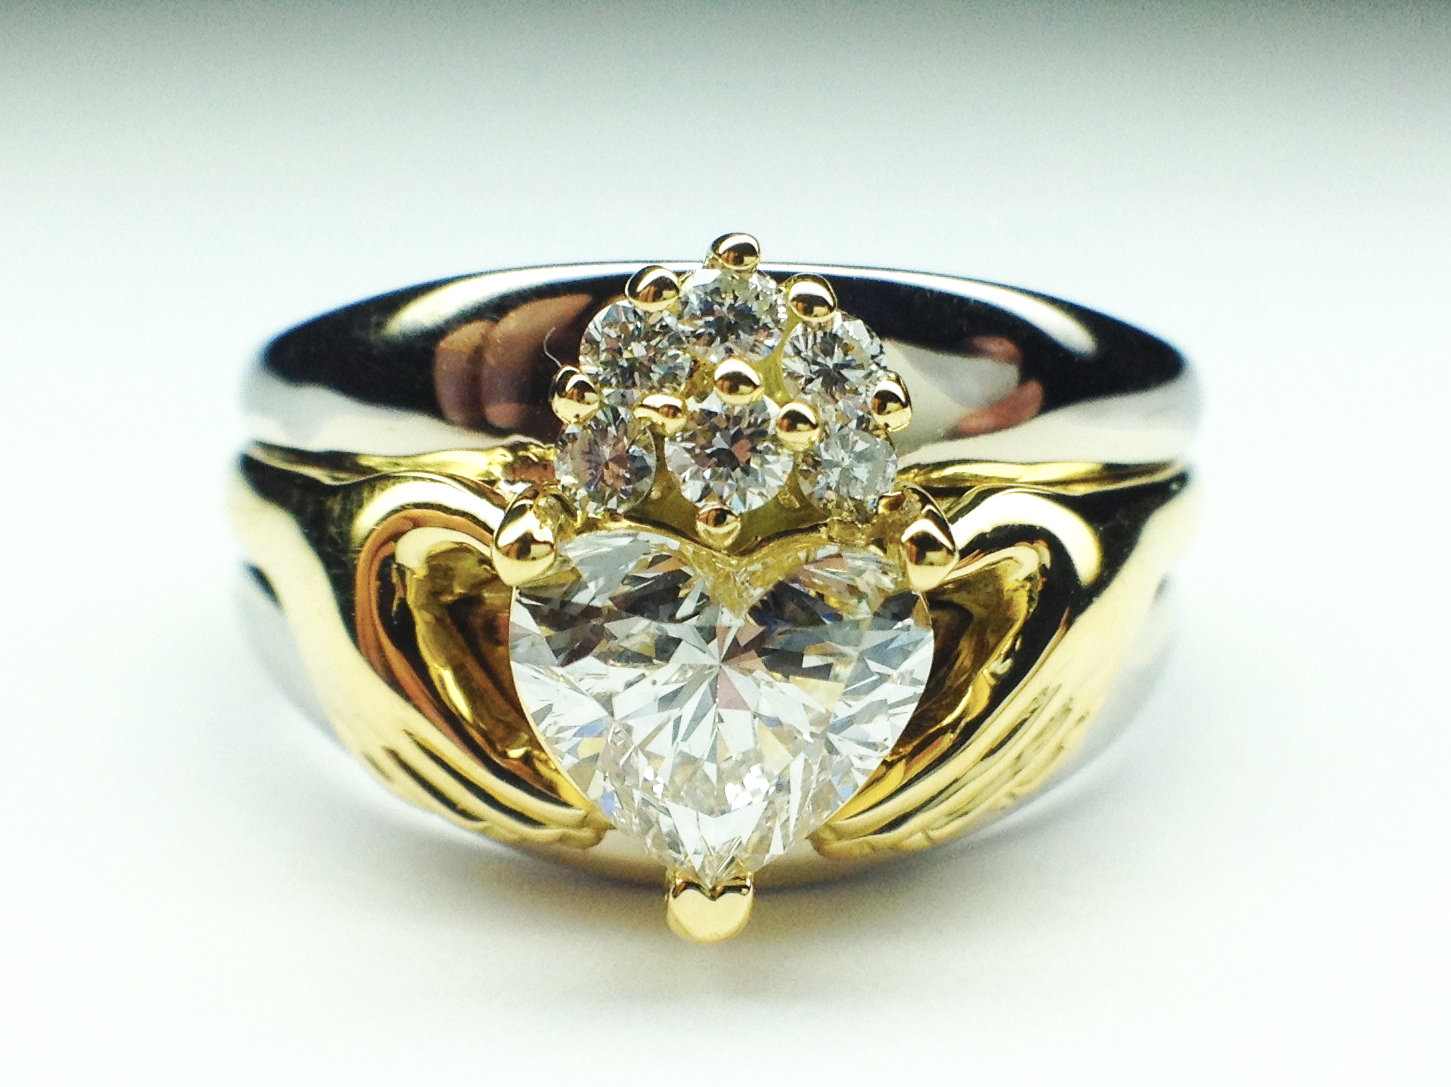 claddagh engagement ring - photo #23